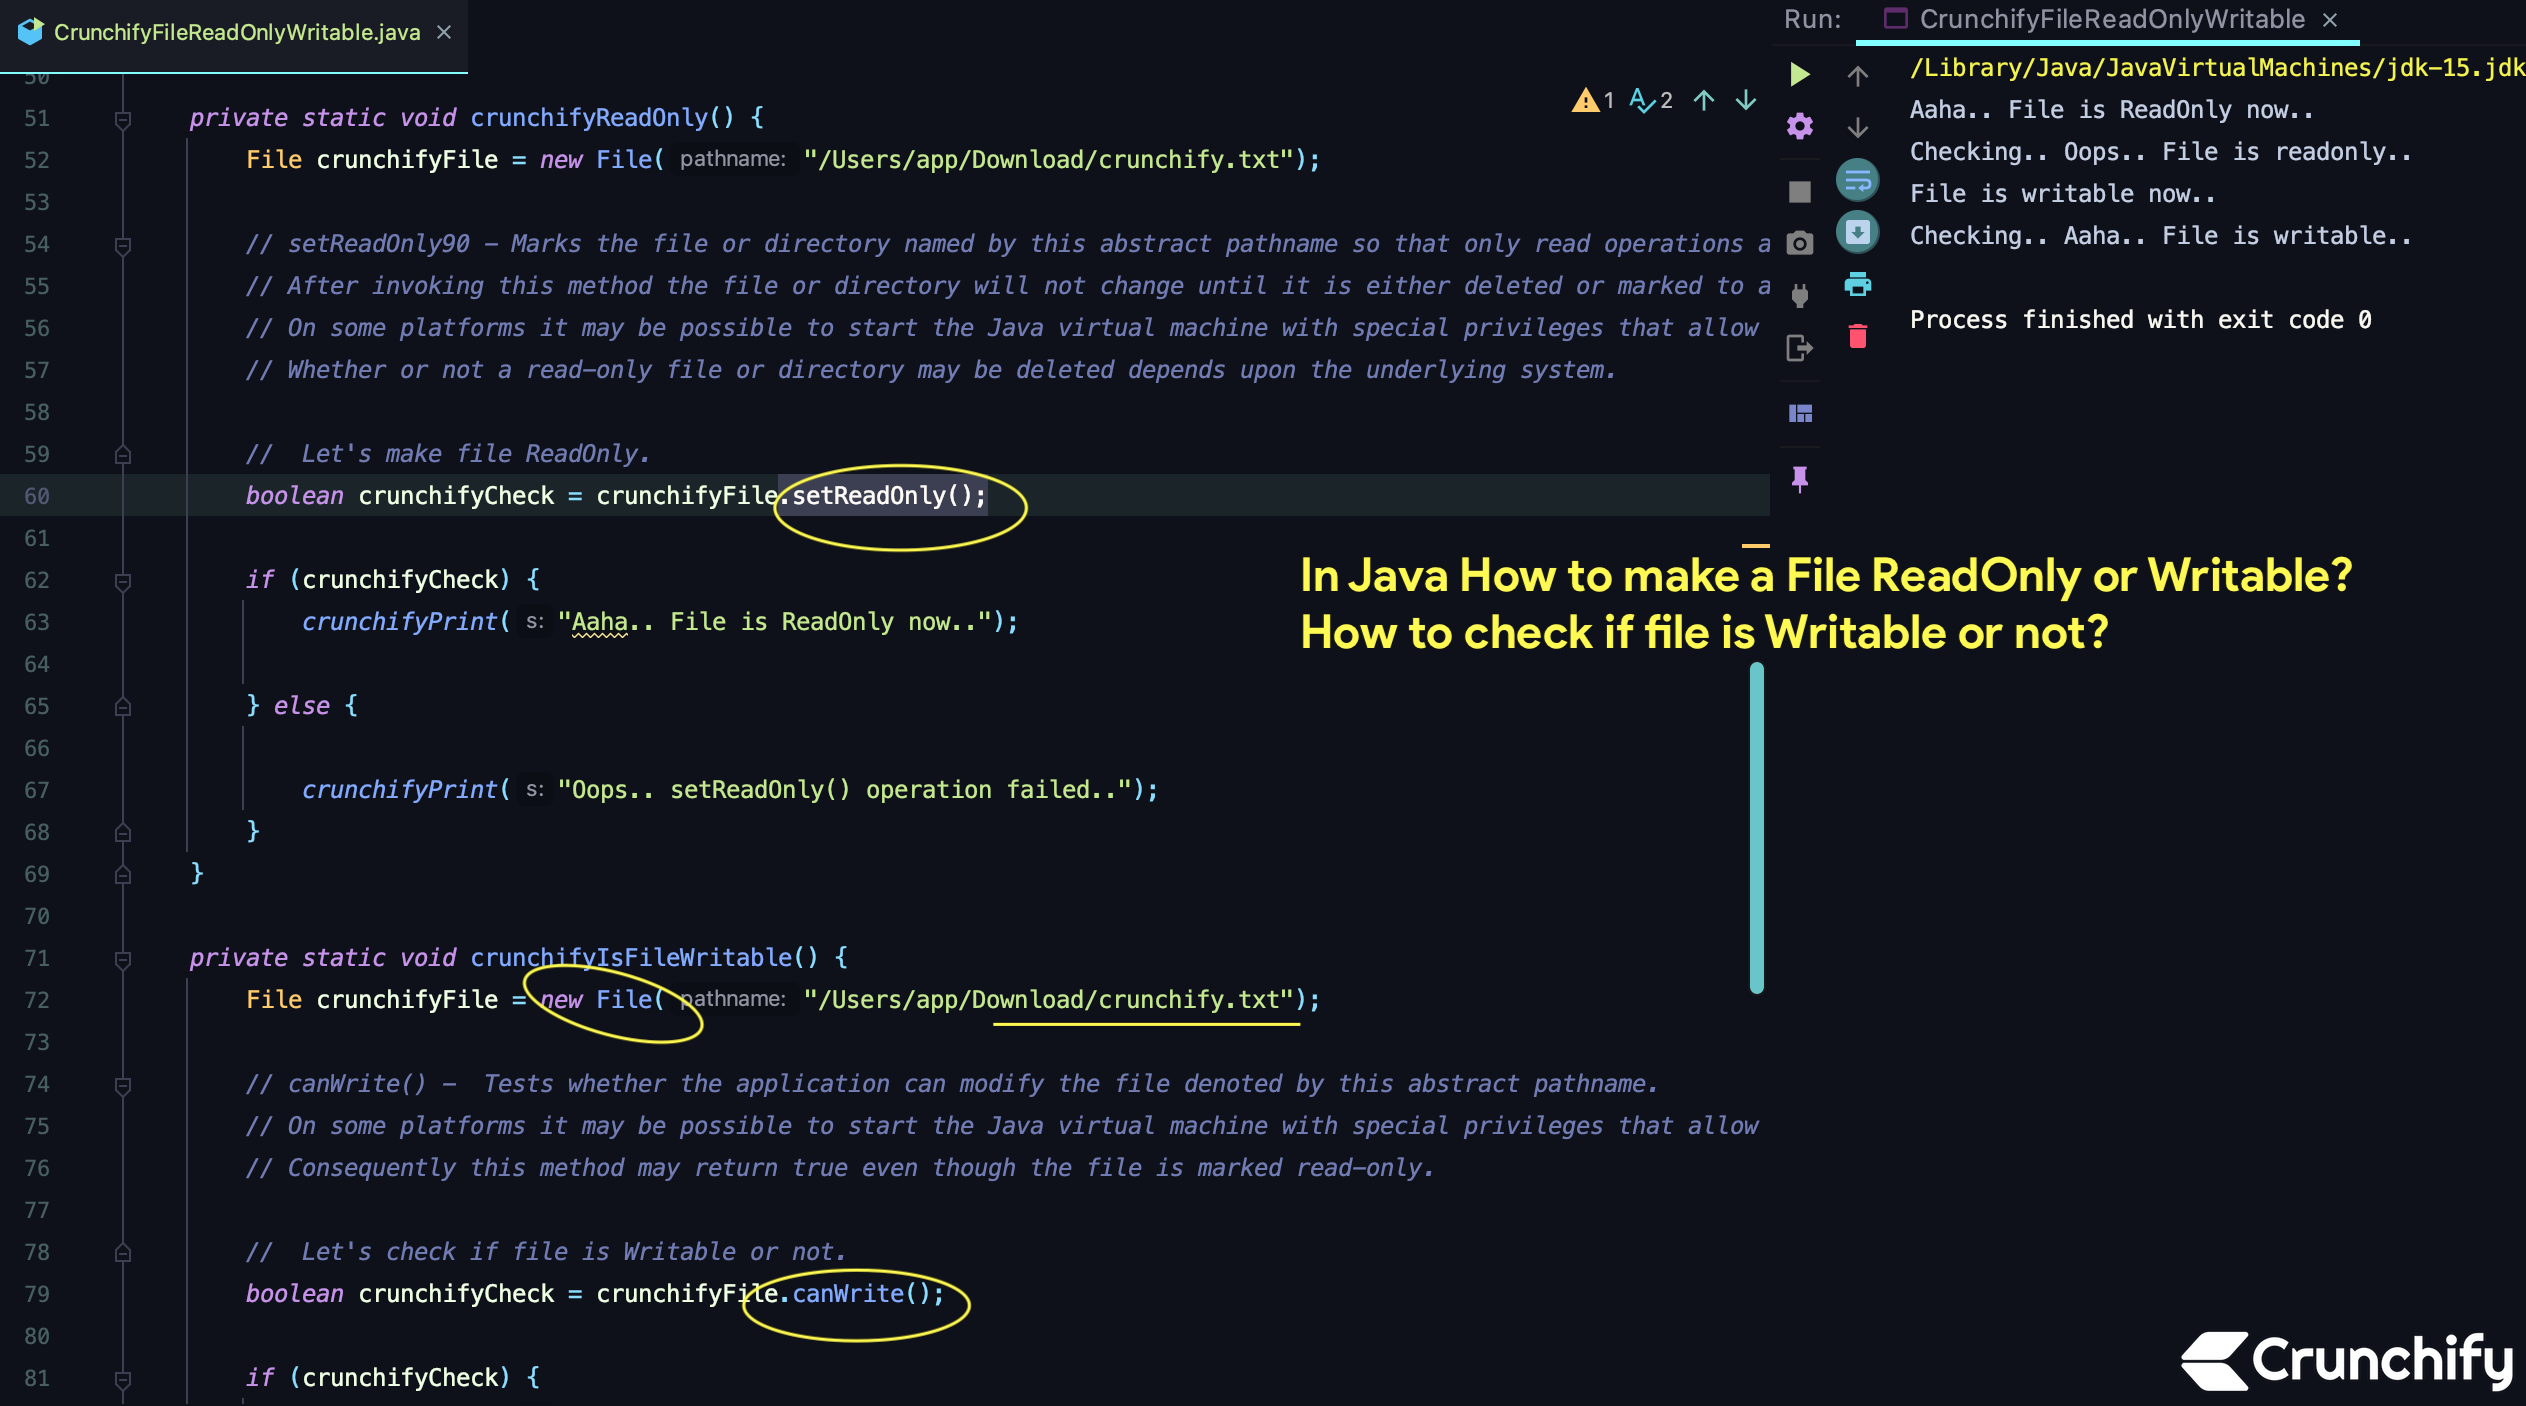 In Java How to make a File ReadOnly or Writable? How to check if file is Writable or not?